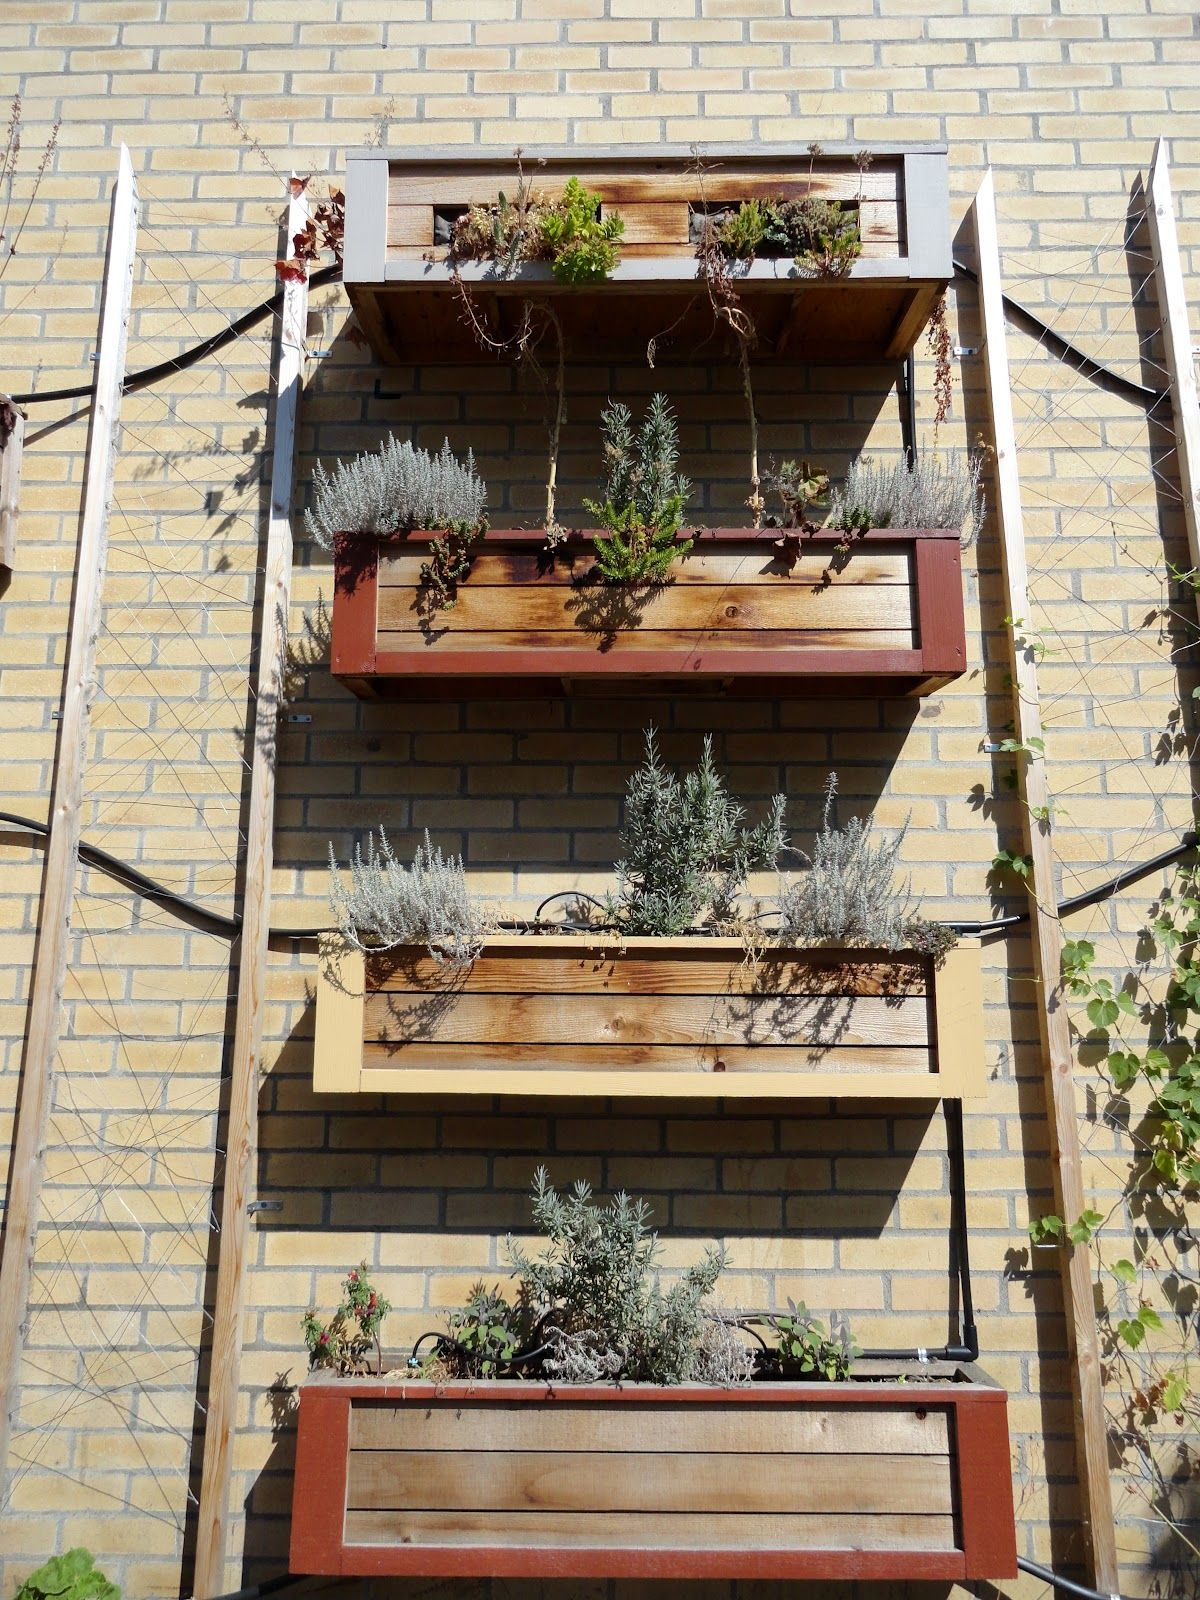 Wall Flower Boxes Window And Planter Boxes Planter Boxes Wall